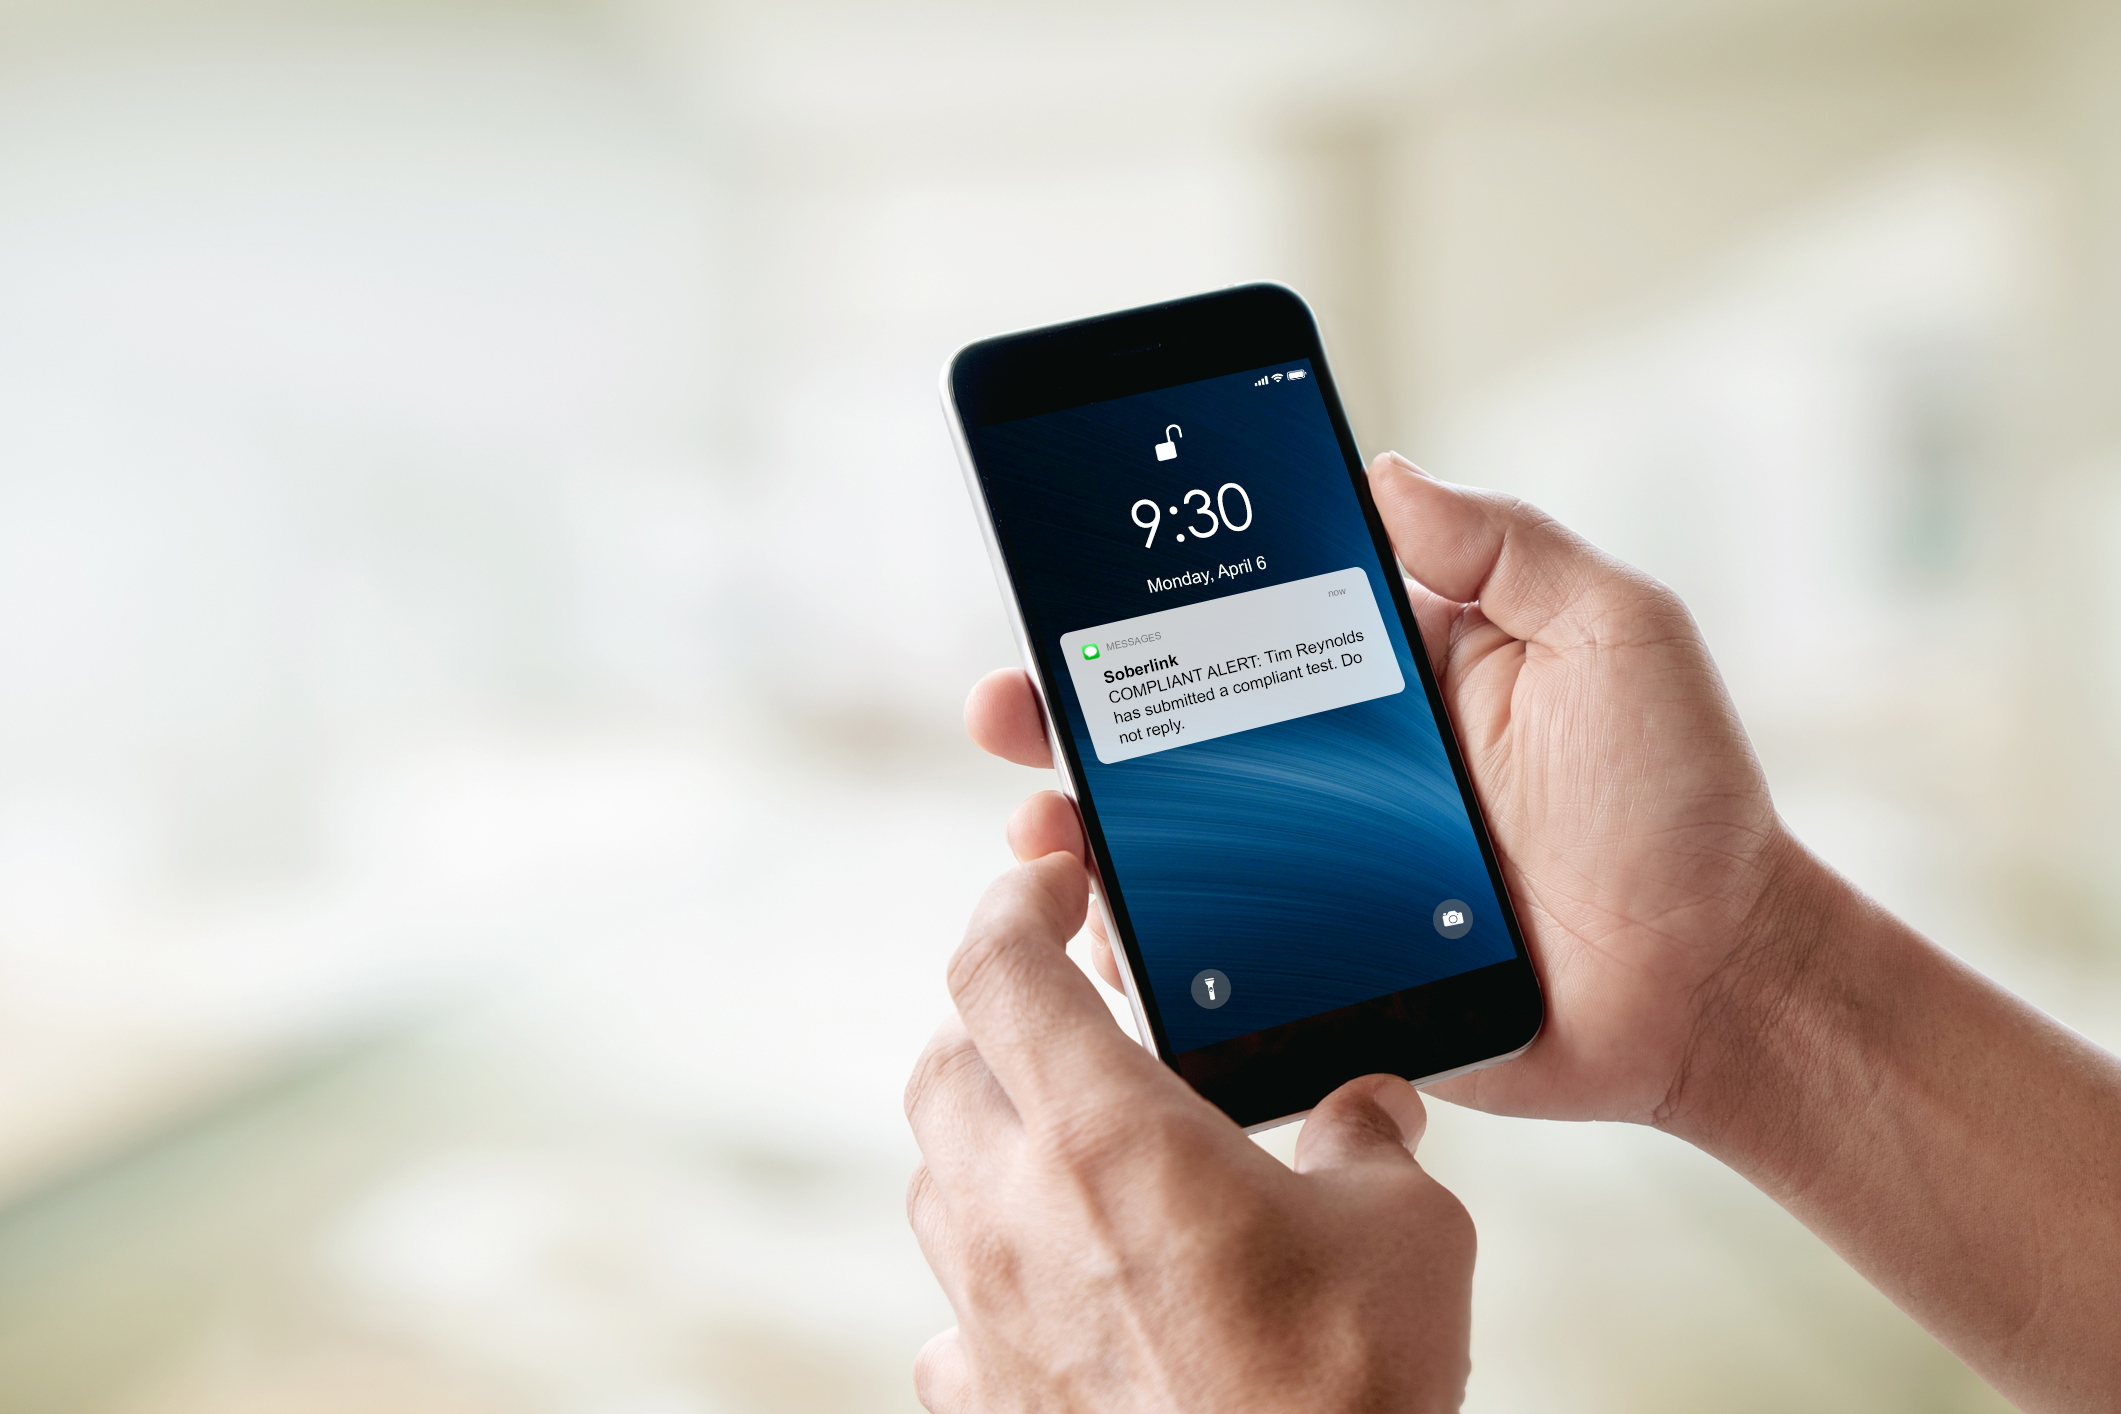 Compliant Test Alert appears on iPhone